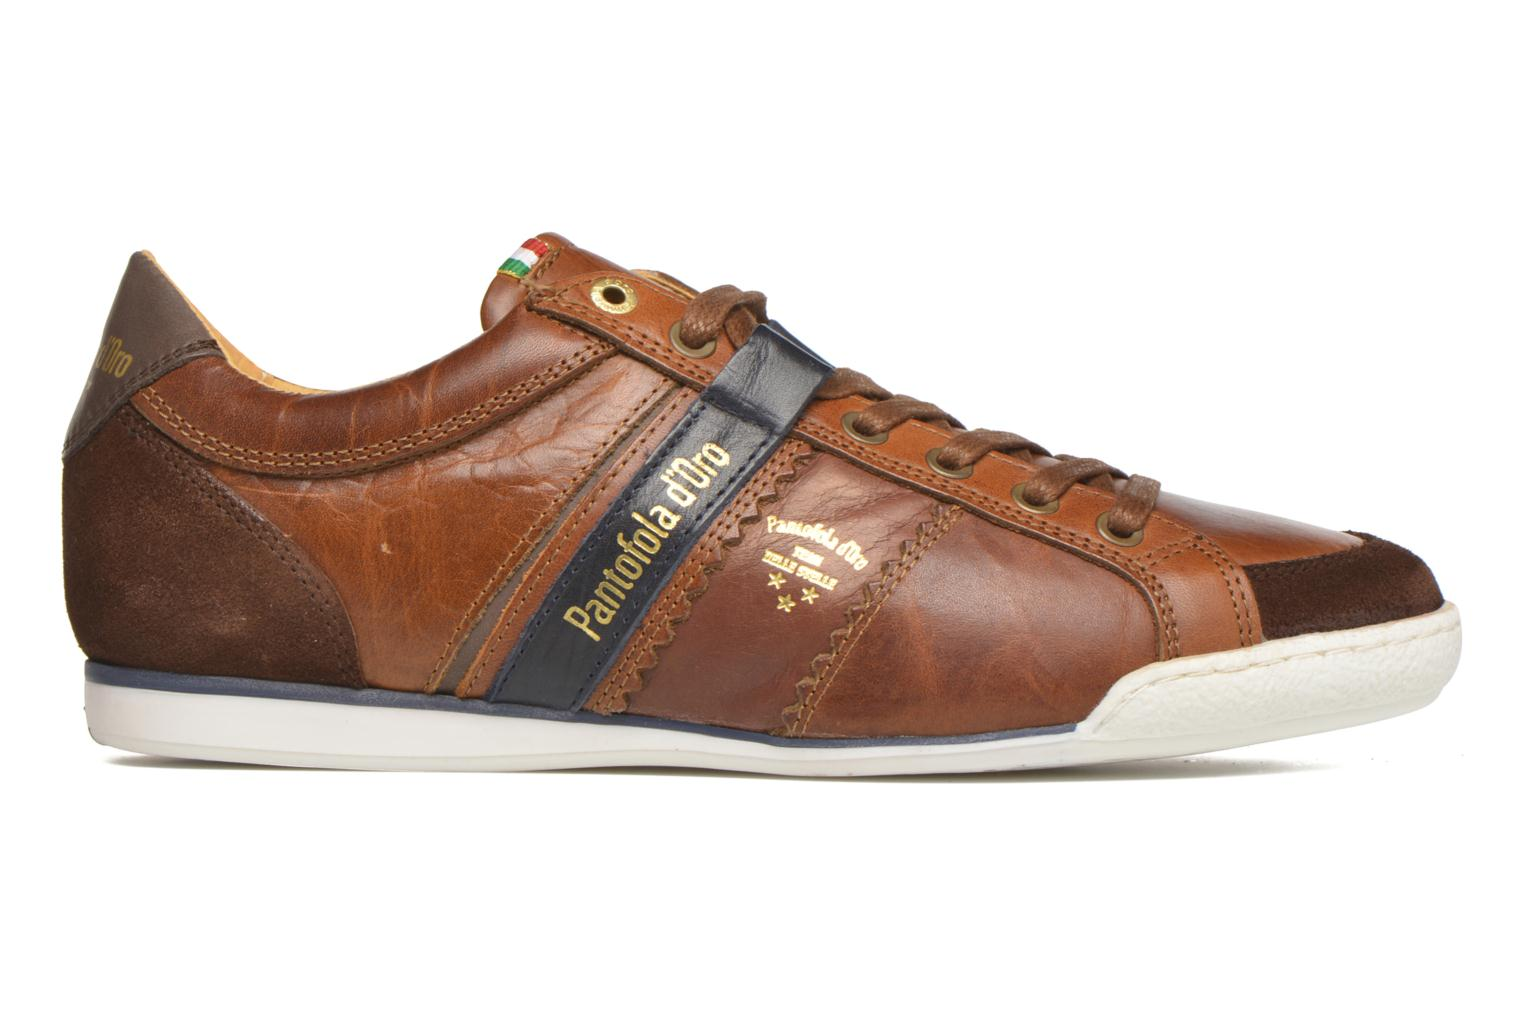 Baskets Pantofola d'Oro Pesaro Piceno Low Men Marron vue derrière